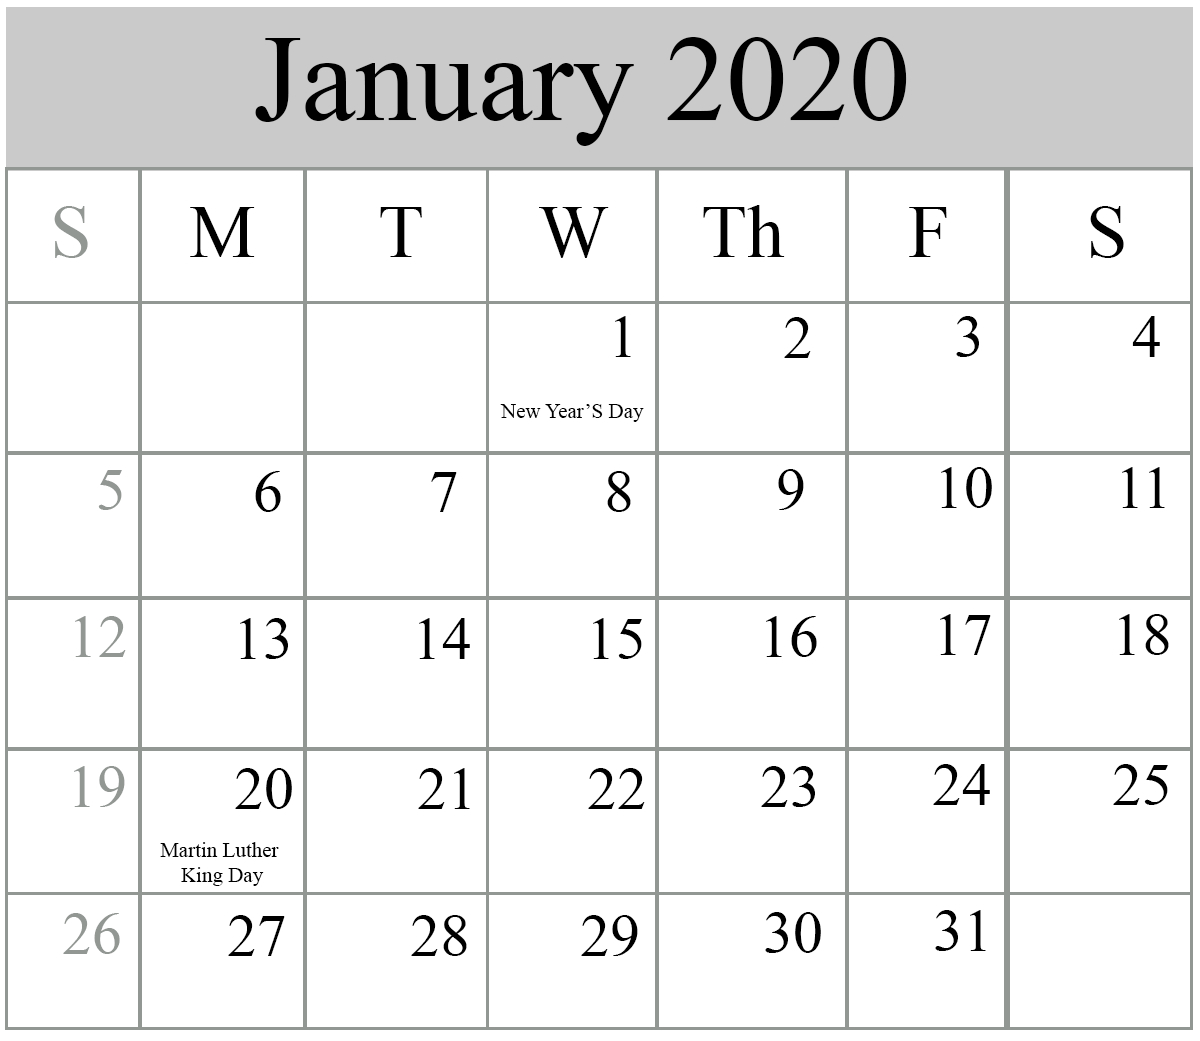 January 2020 Calendar With American Holidays And Events